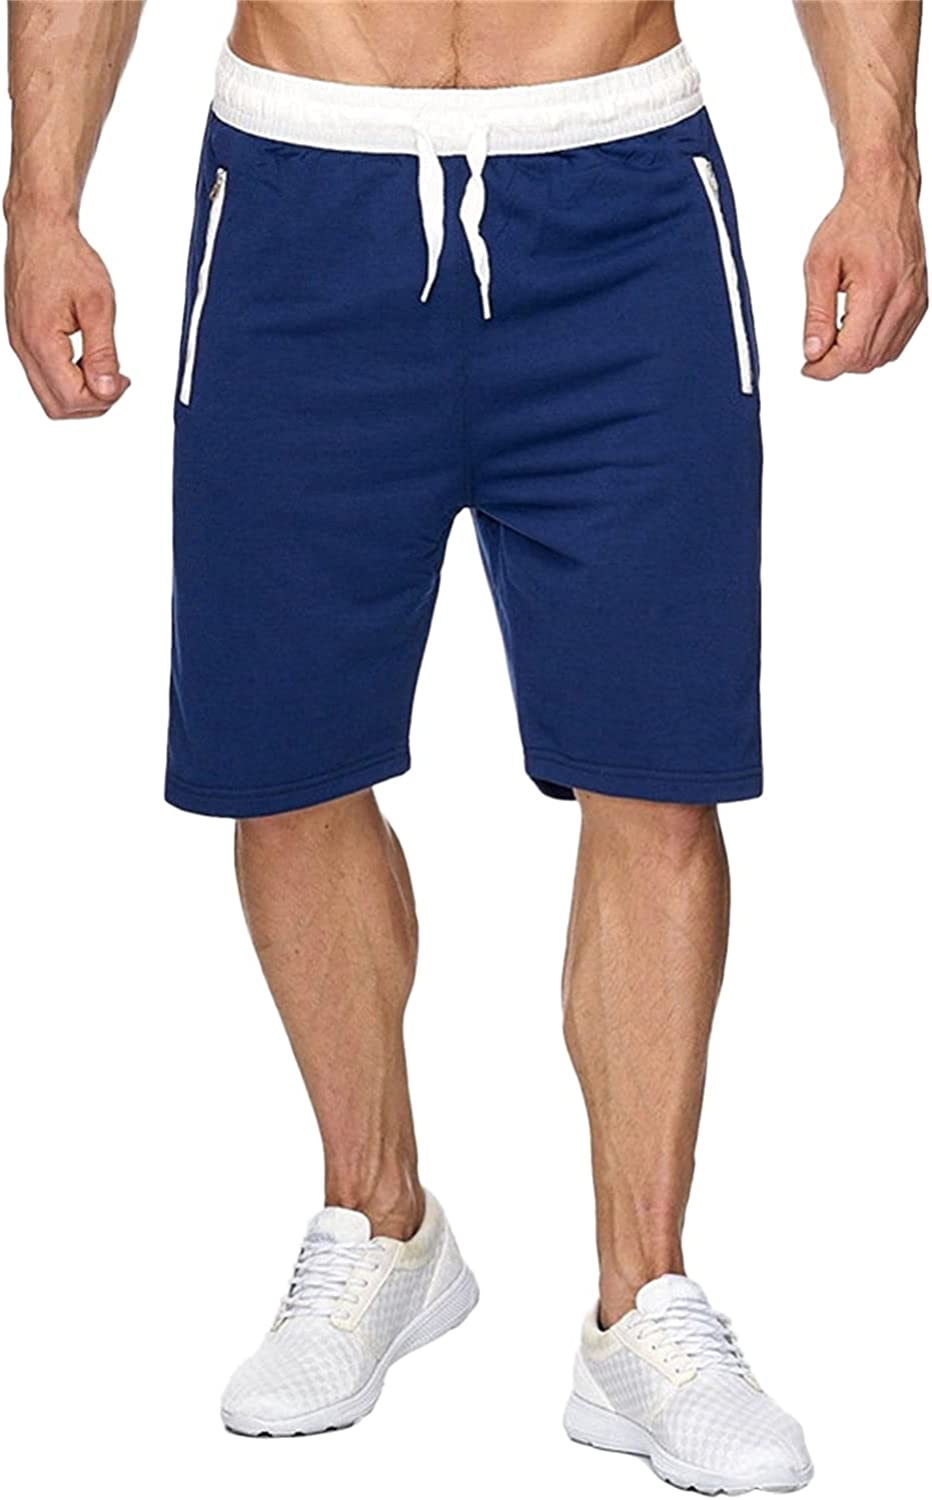 Men's Omaha High material Mall Casual Beach Shorts Plus Shor Breathable Loose Sports Size